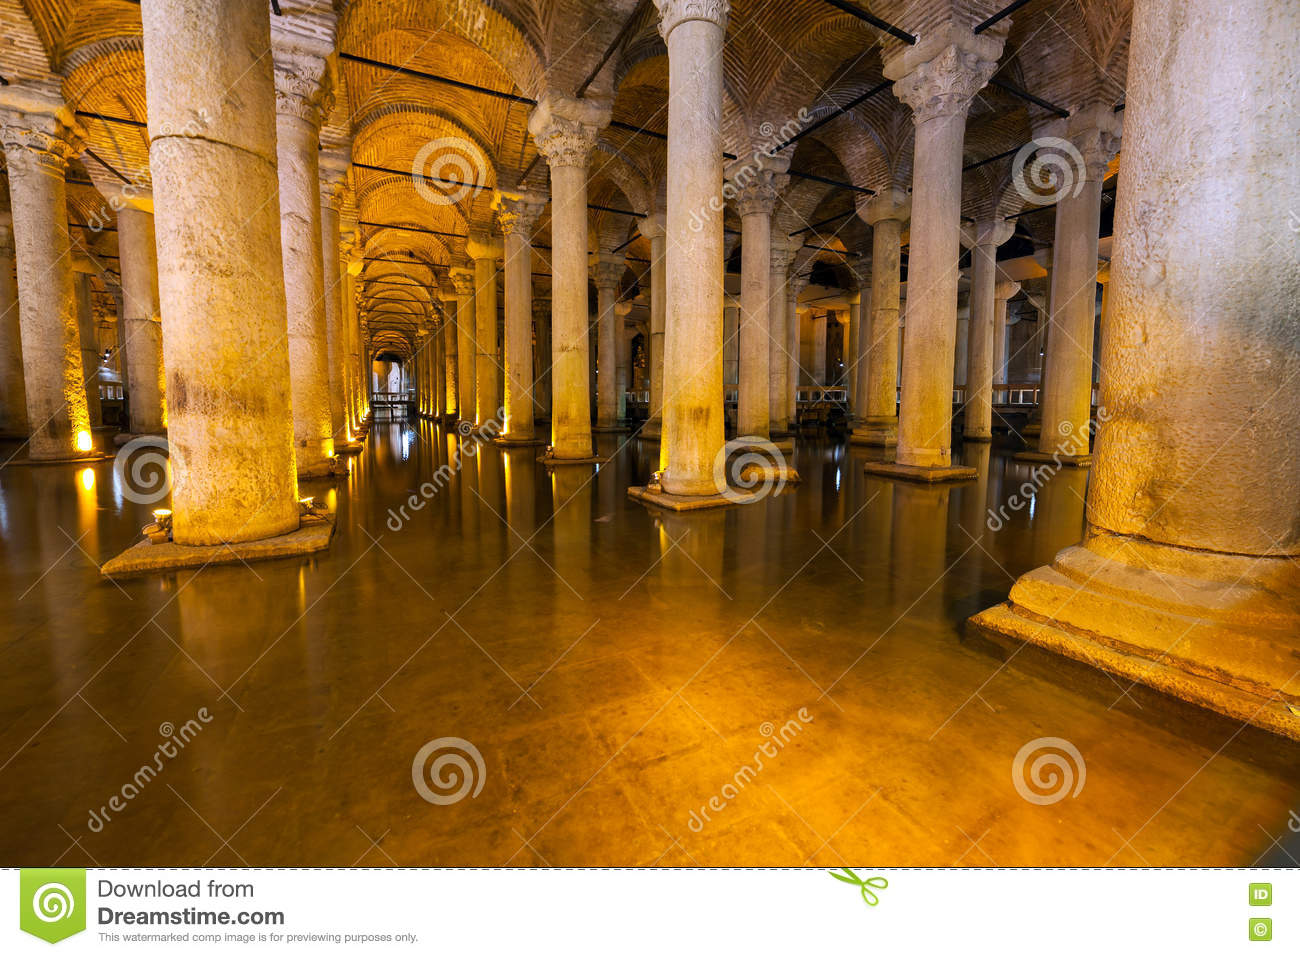 The Basilica Cistern - Underground Water Reservoir Build By